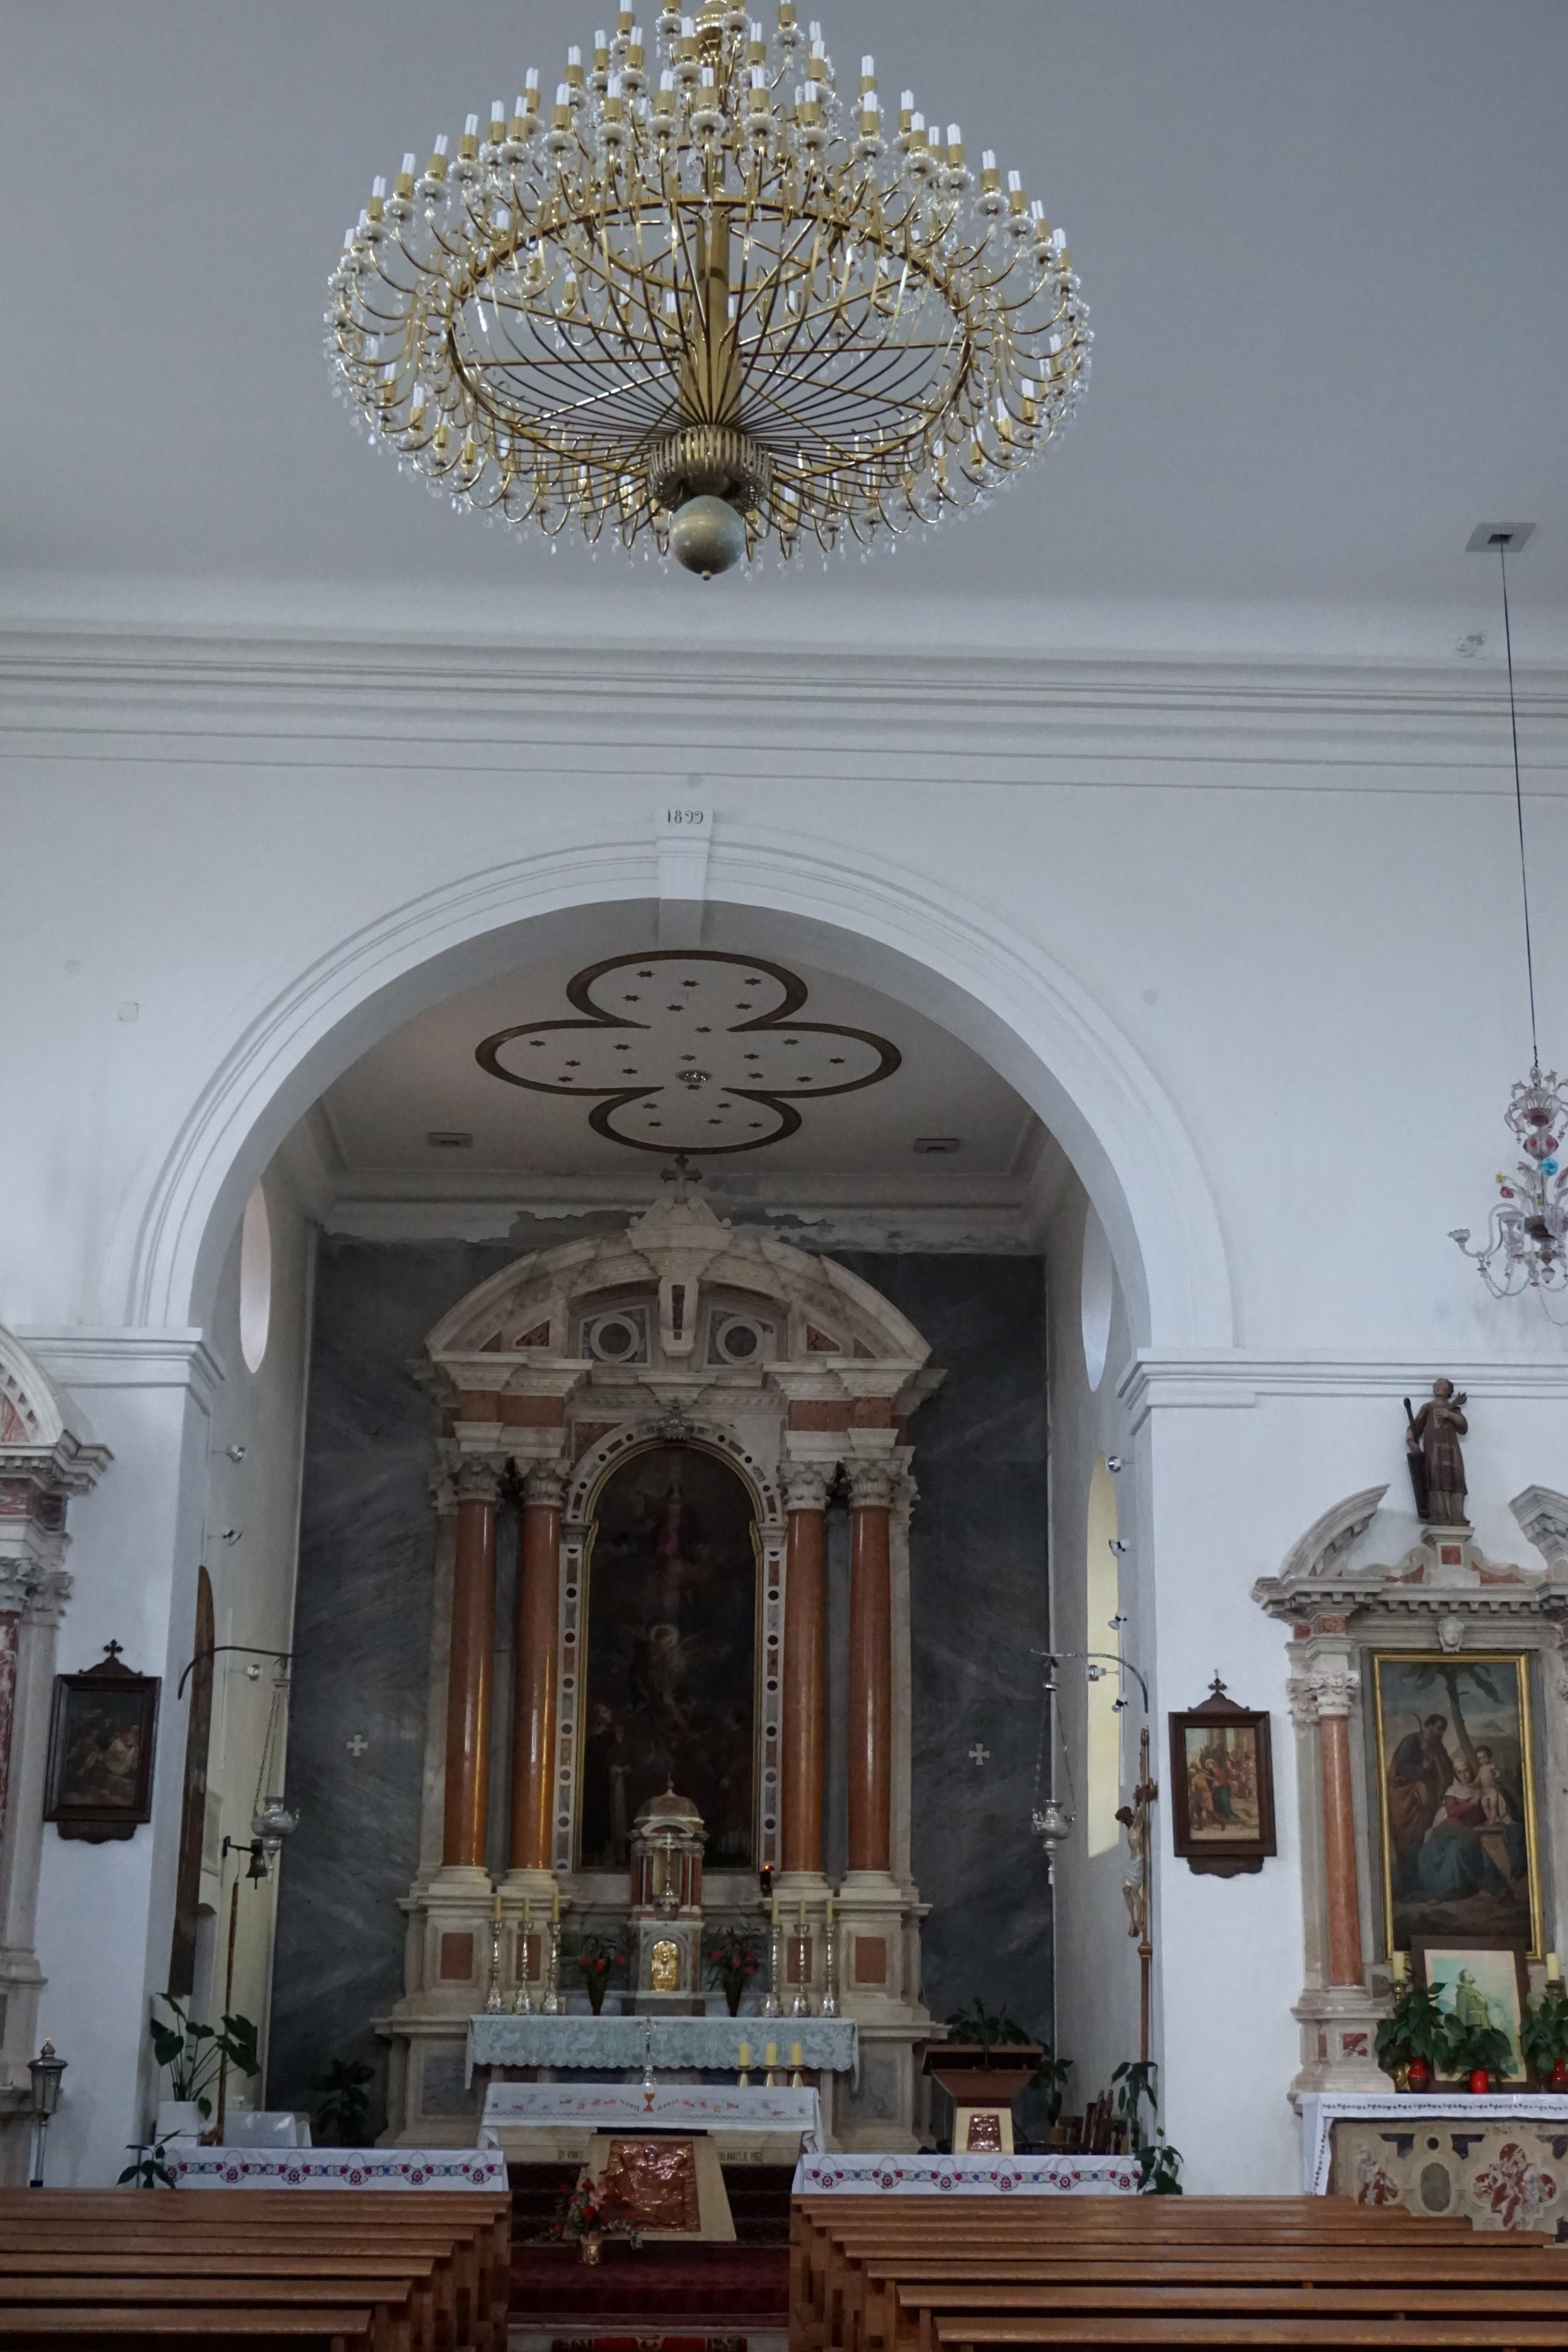 Photos from inside the church.